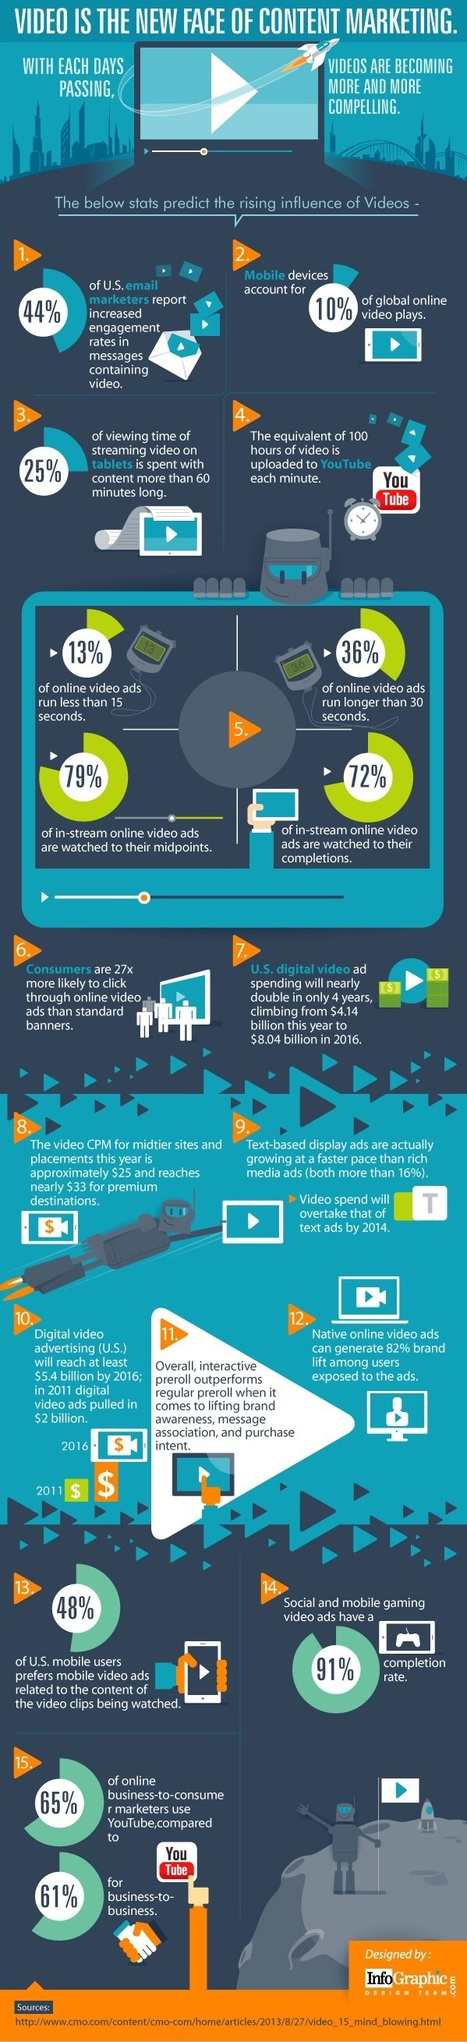 Video Is the New Face of Content Marketing [Infographic] | World of #SEO, #SMM, #ContentMarketing, #DigitalMarketing | Scoop.it